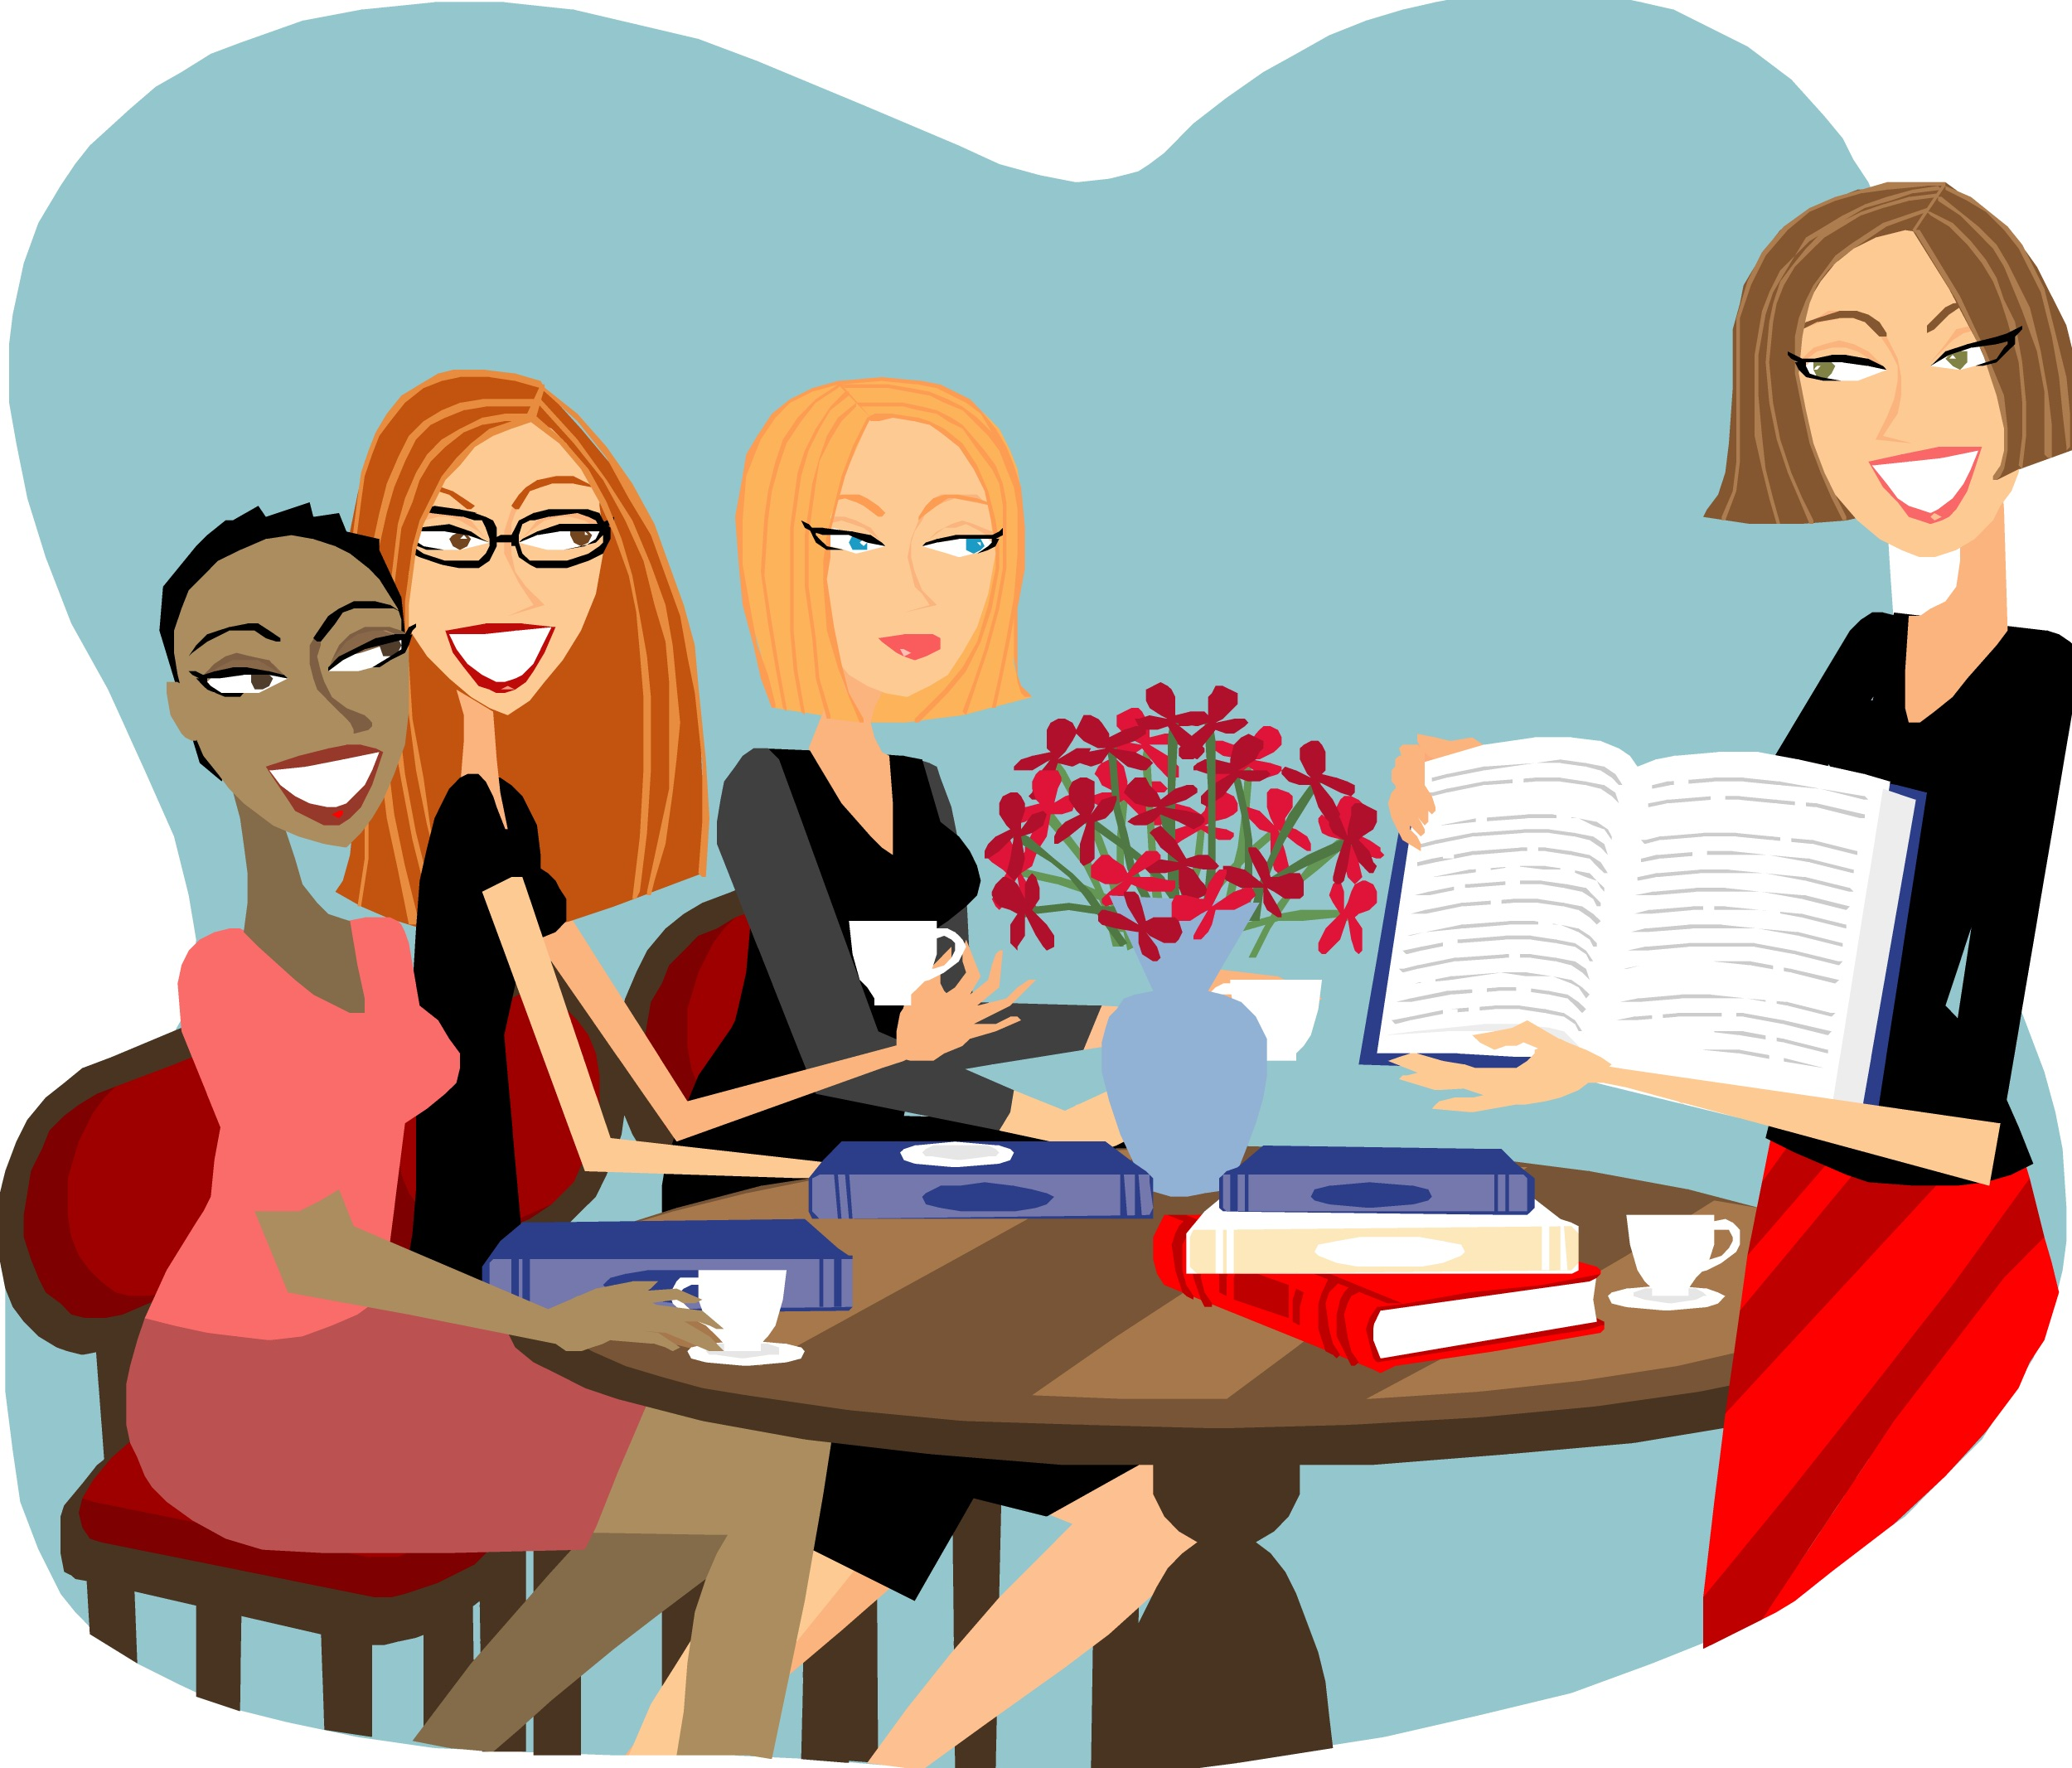 Club clipart discussion group Book Public To Club